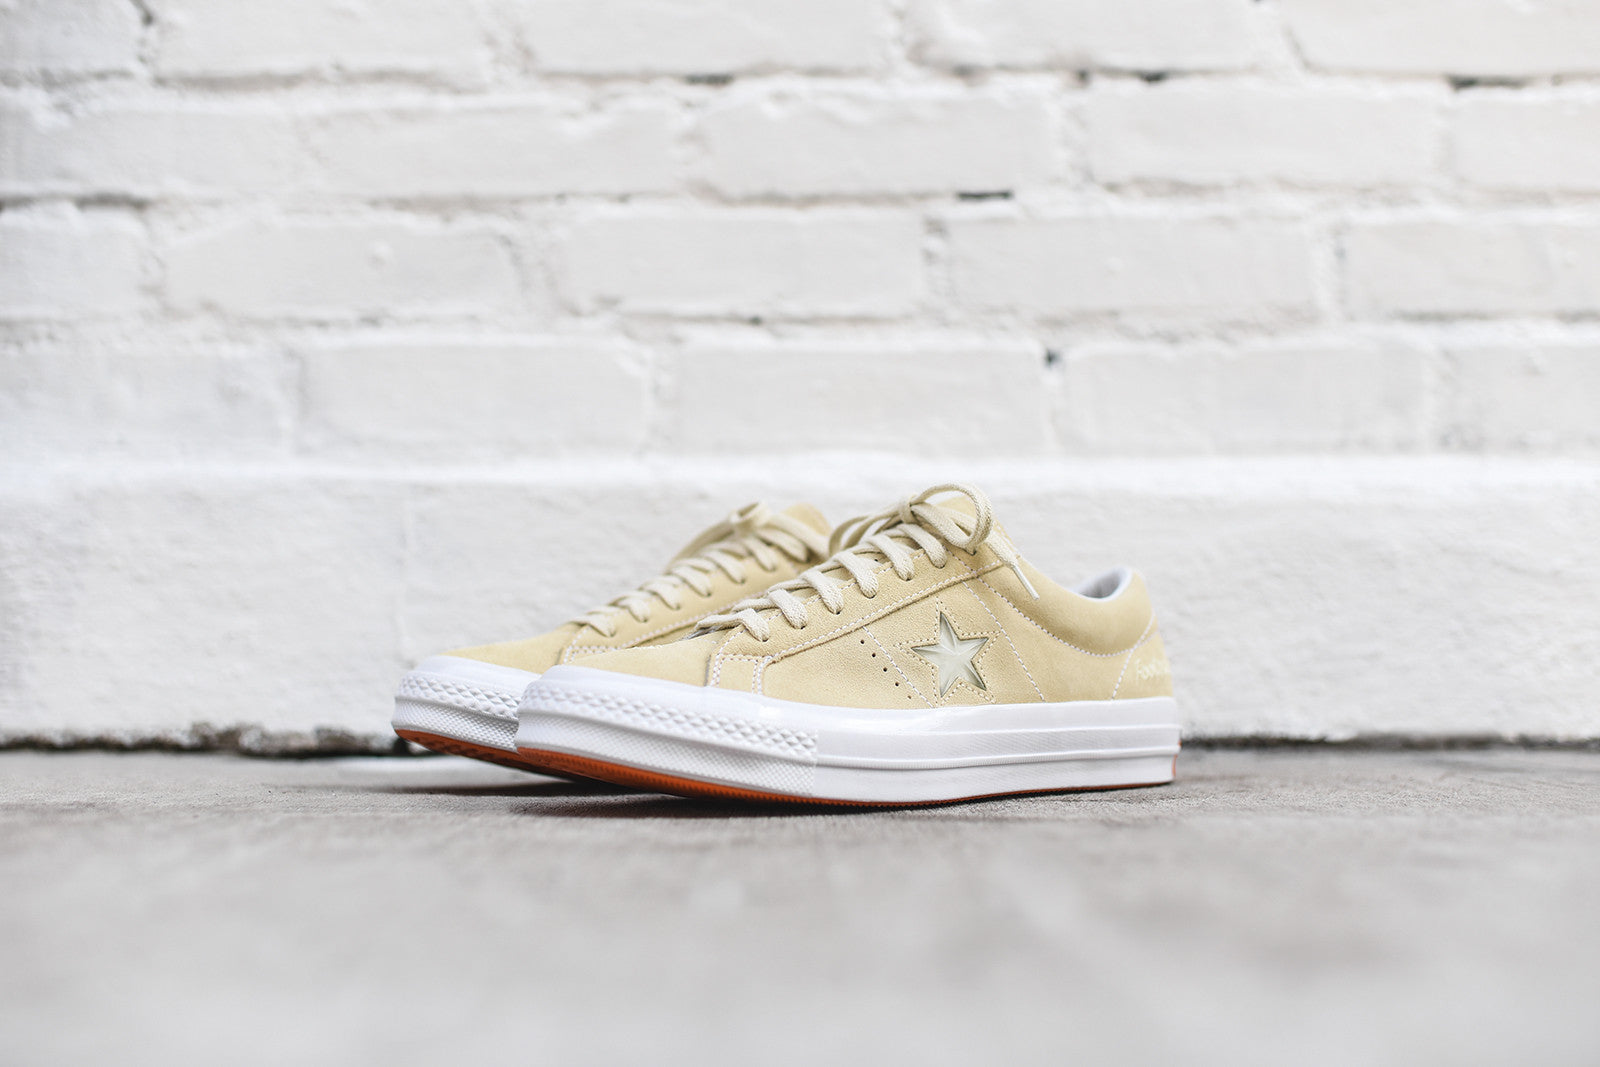 Converse x Footpatrol One Star Ox - Cream / White